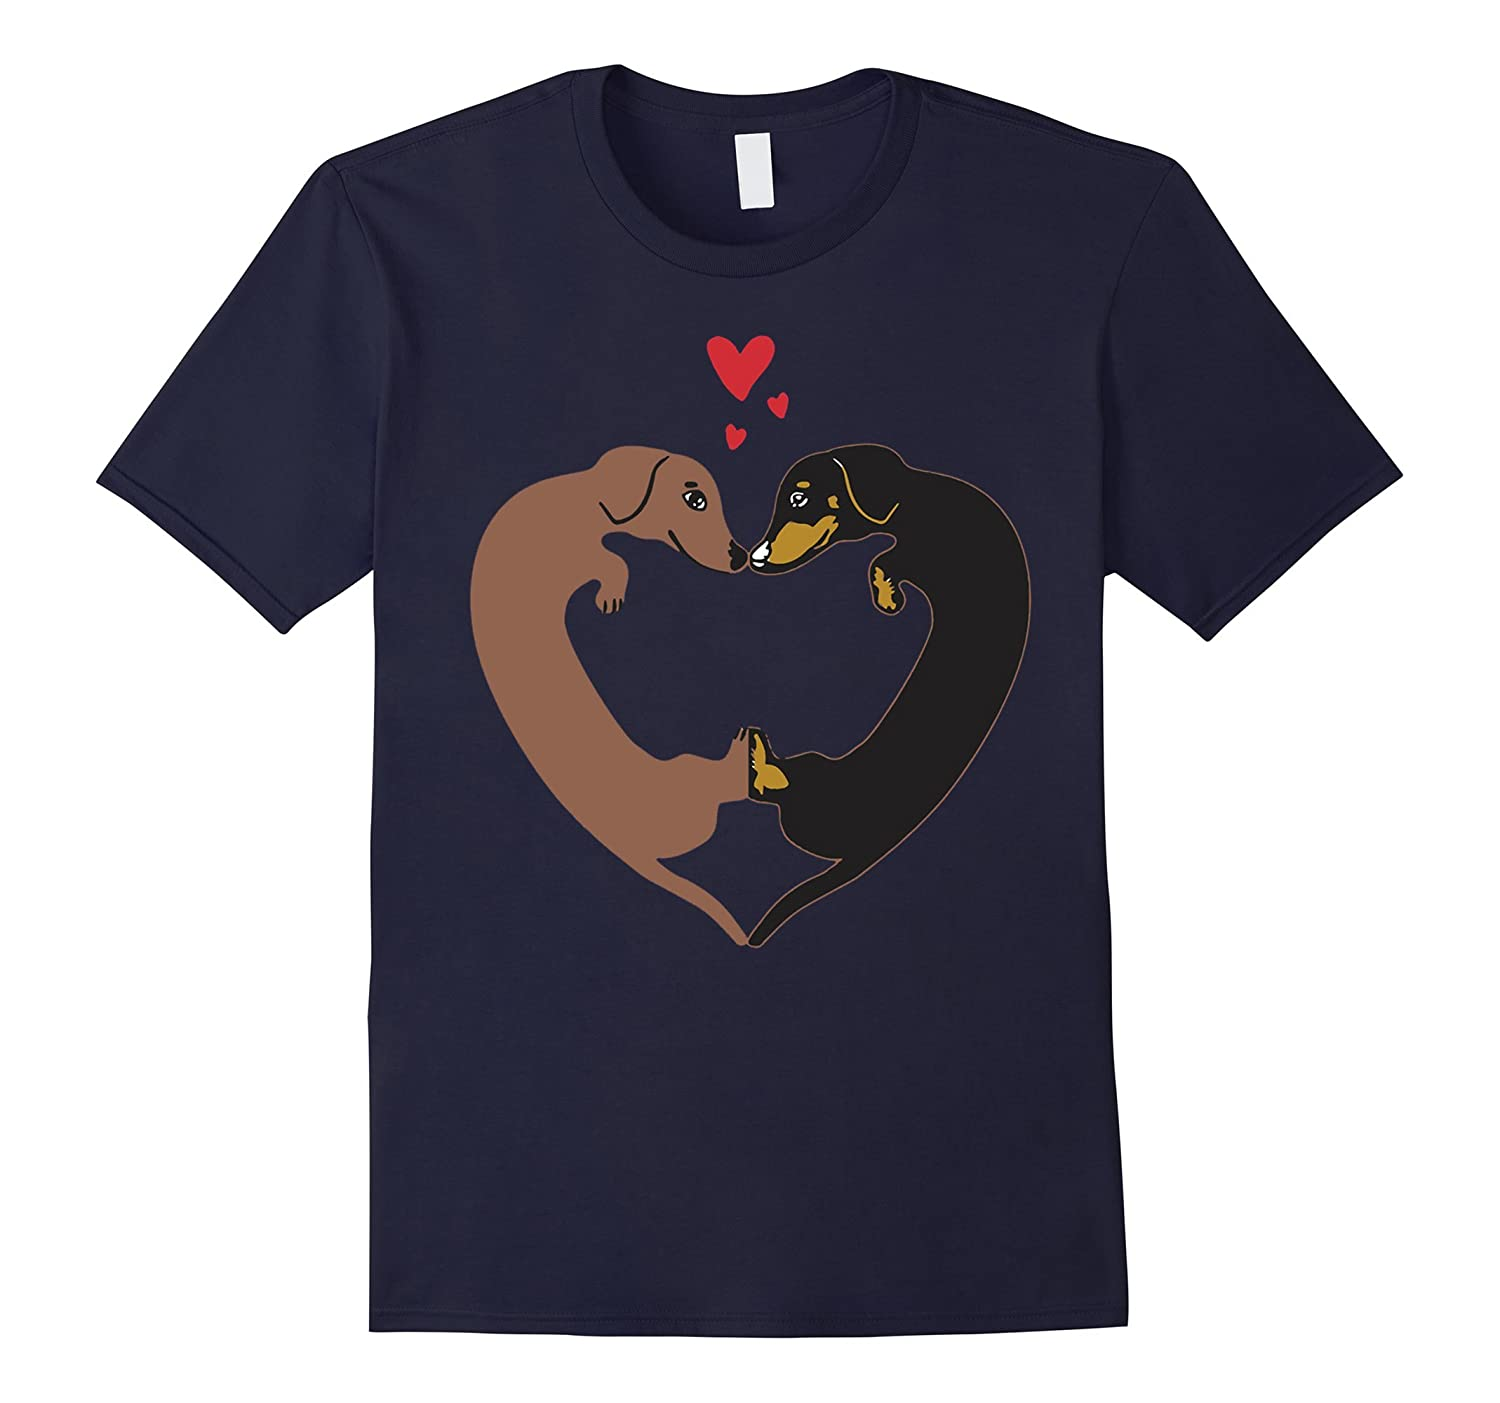 Dachshund Heart Shirt - Wiener Dog Heart Love Shirt-TD